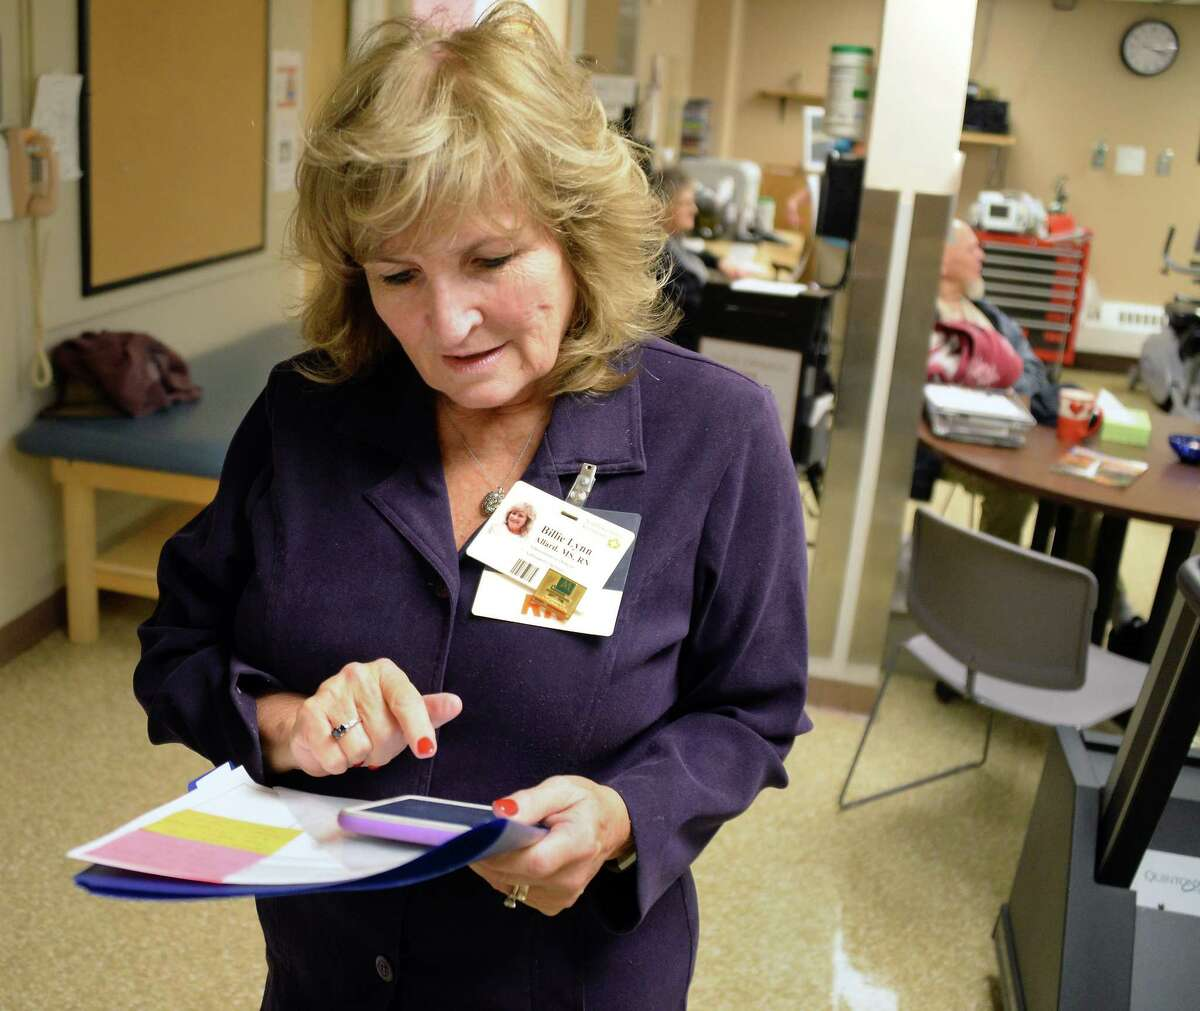 Administrative director of outpatient services and transitions of care Billie Lynn Allard, MS,RN at Southern Vermont Medical Center Nov. 15, 2017 in Bennington, Vermont. (John Carl D'Annibale / Times Union)